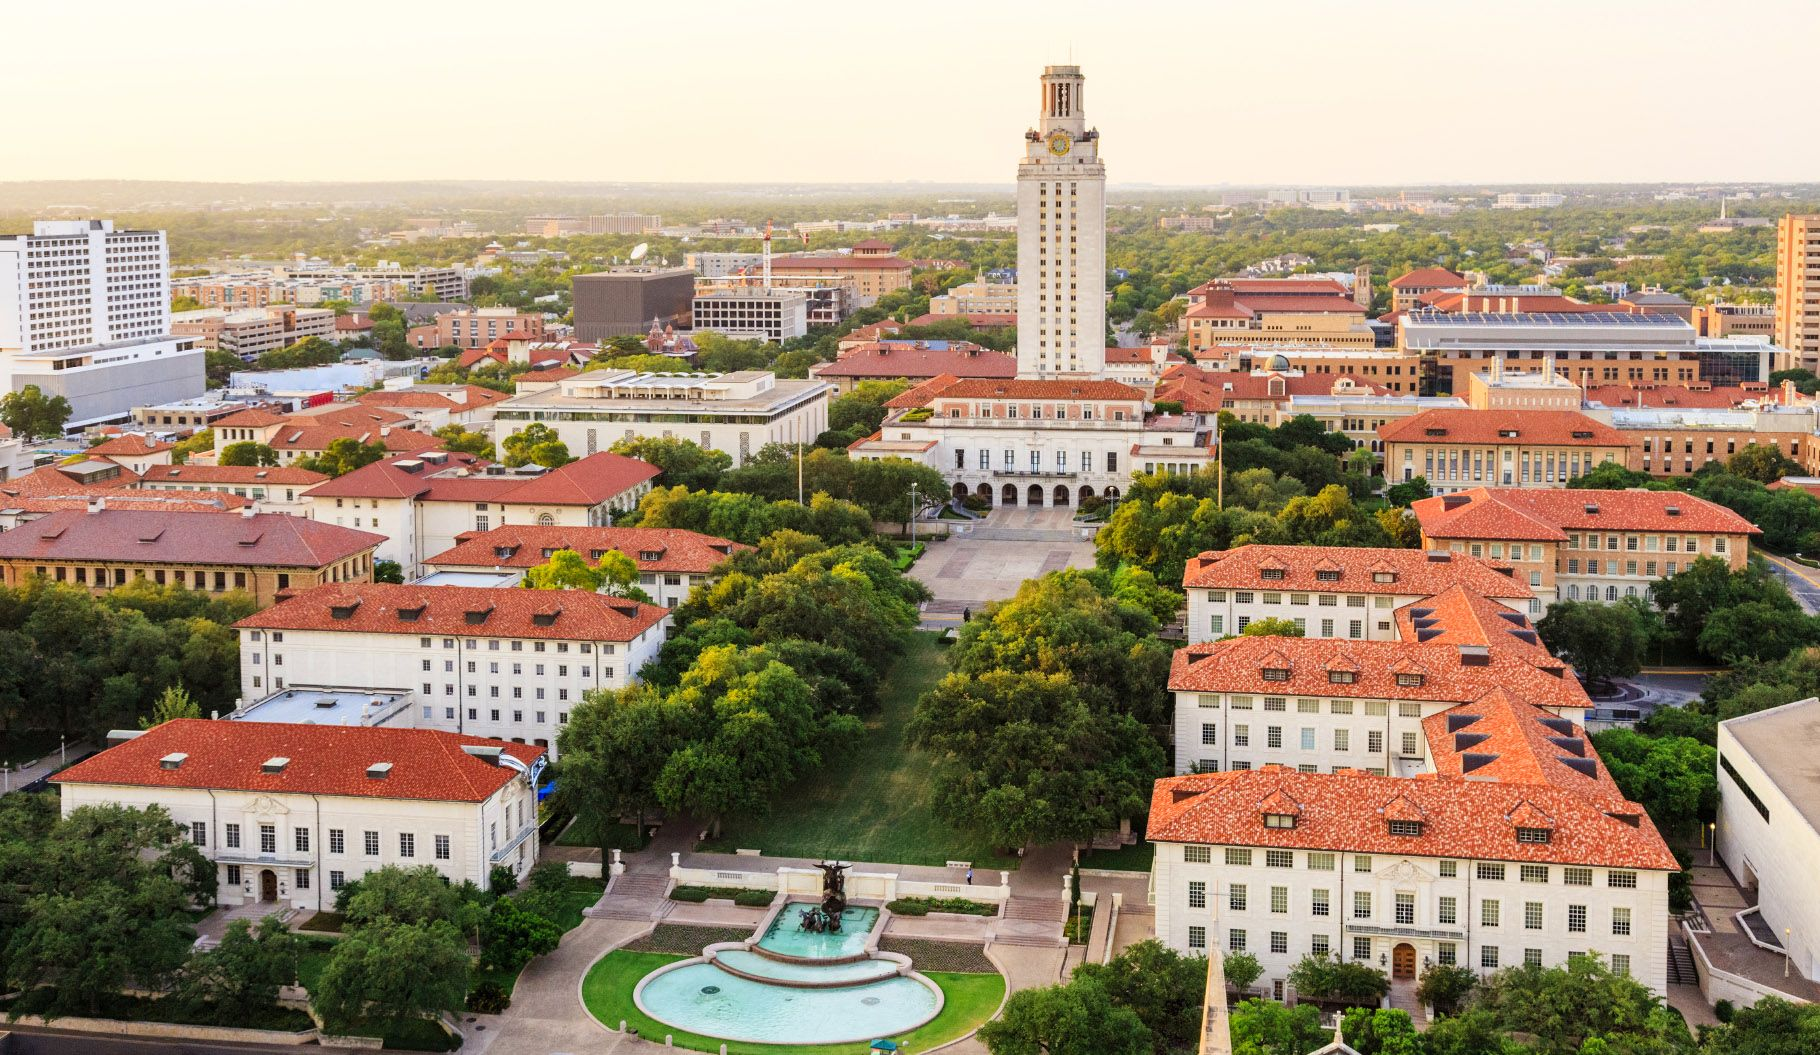 University of Texas Health Science